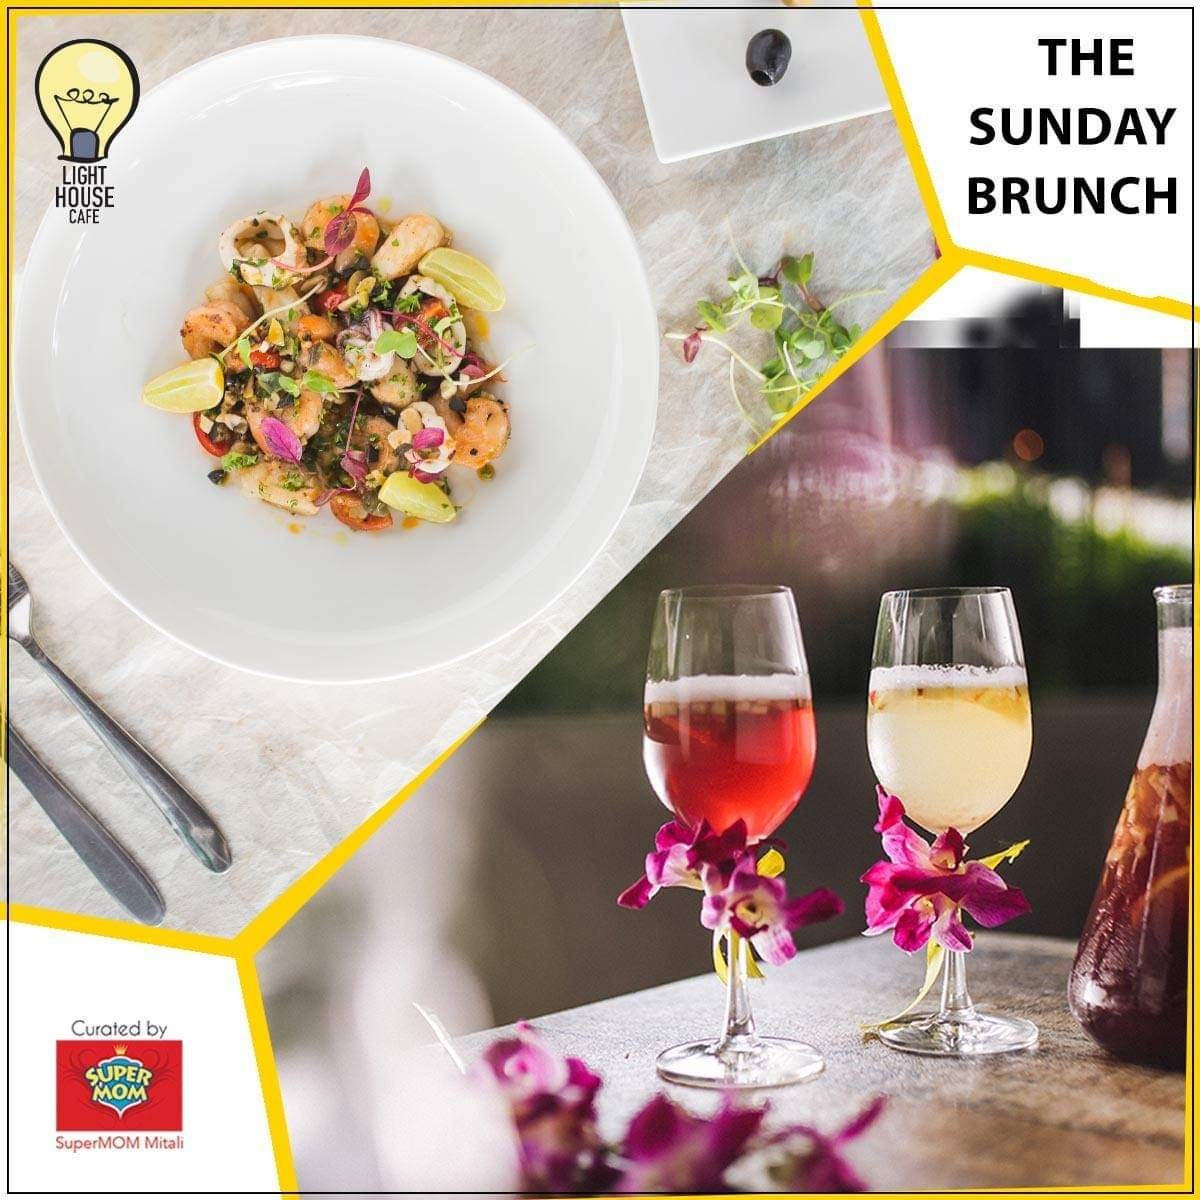 Spread your own sunshine with the exclusive Sunday Brunch at Light House Cafe !!  #LHC #Worli #Mumbai #Zomato #Blogpost #bloggers #Weekday #CurlyTales #Weekends #Thingstodo #Mumbaifoodie #Foodgasm #mumbaifood #indianblogger #dailyfoodfeed #blogspot #Beer #BeerFest #ChugFest